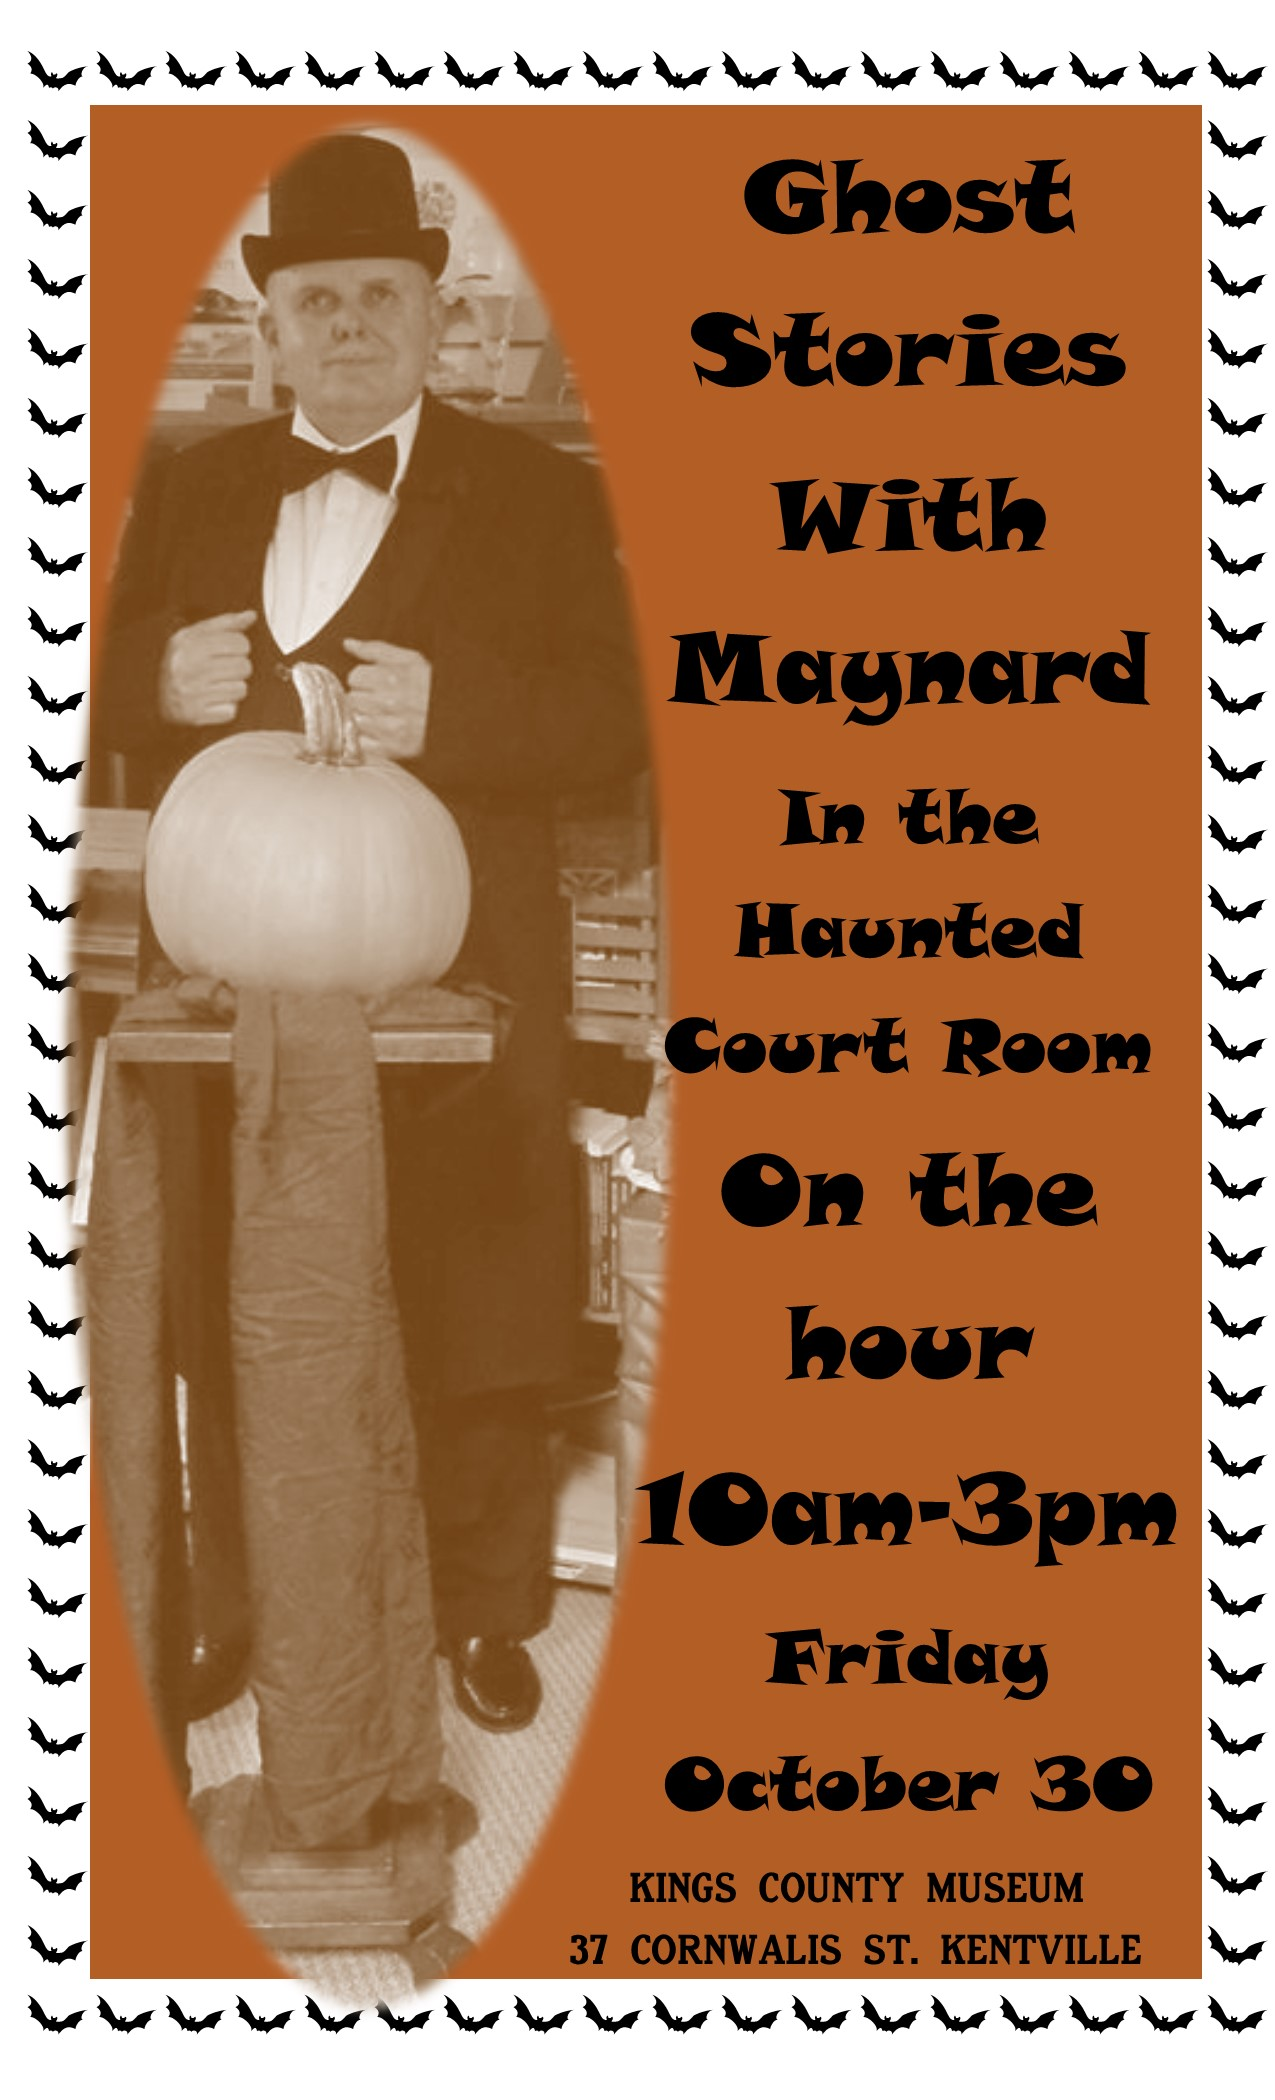 Ghost Stories with MaynardKings County Museum